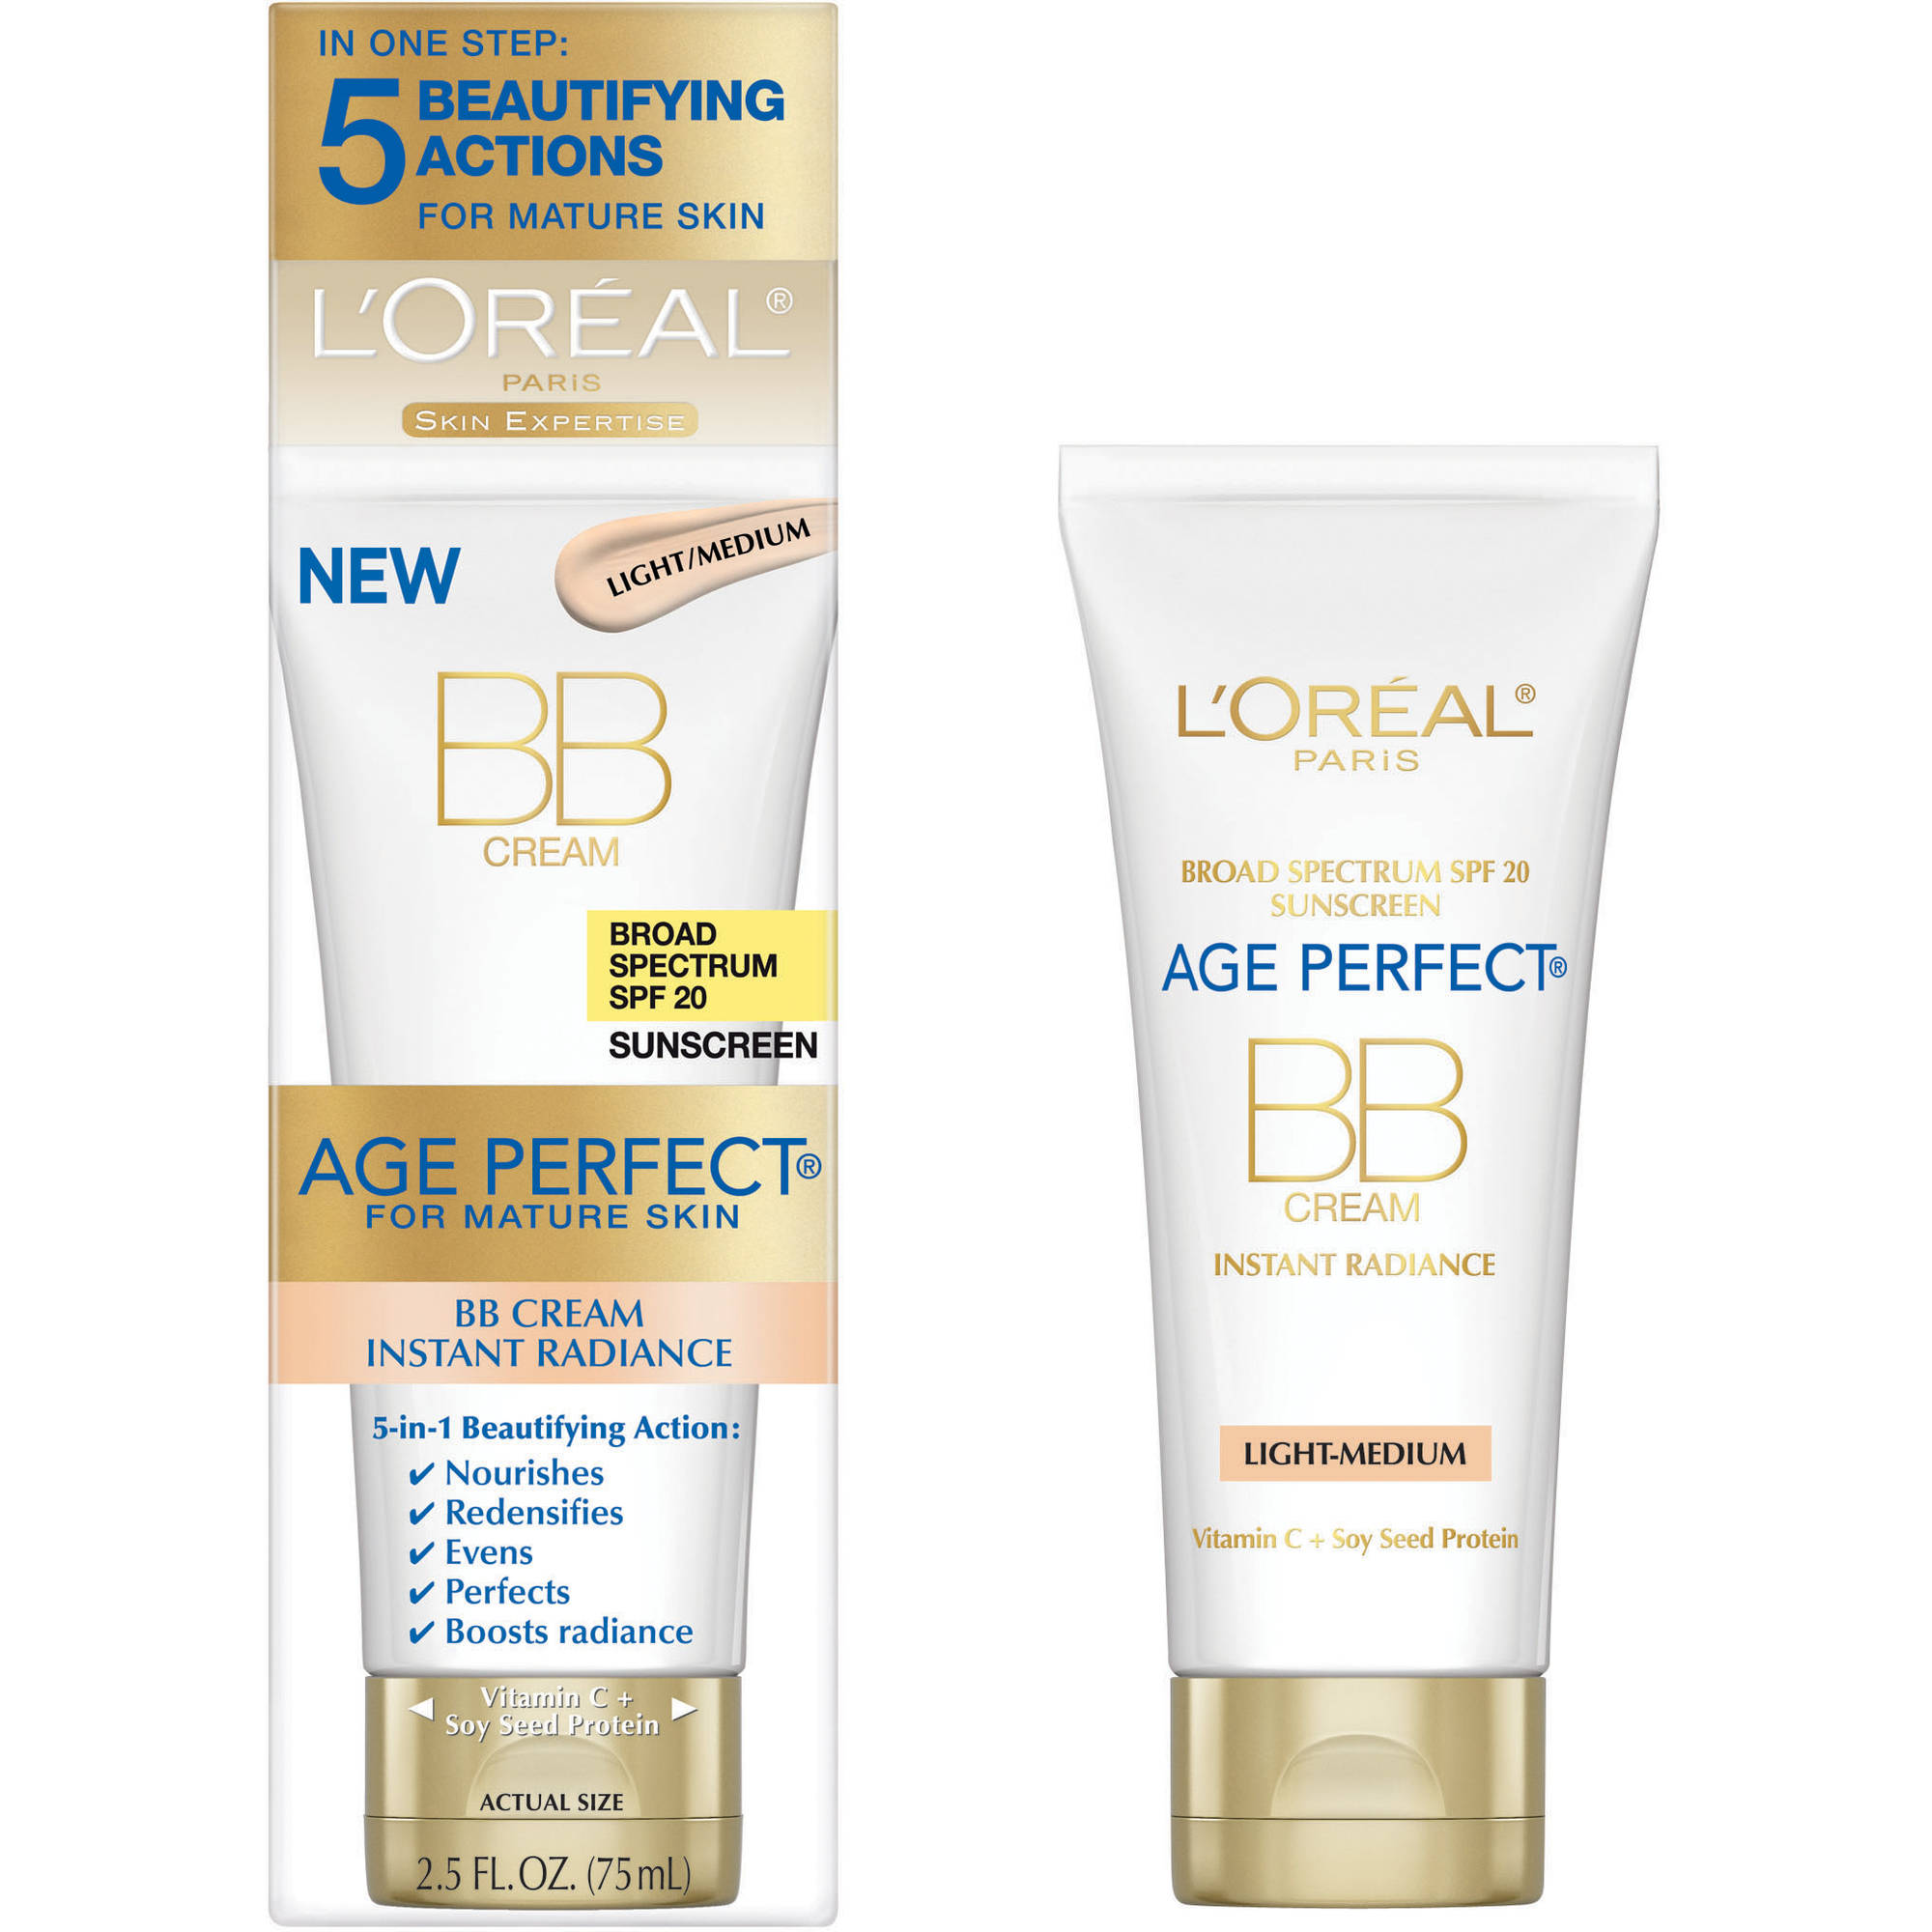 L'Oreal Paris Age Perfect BB Cream for Mature Skin, 2.5 fl oz